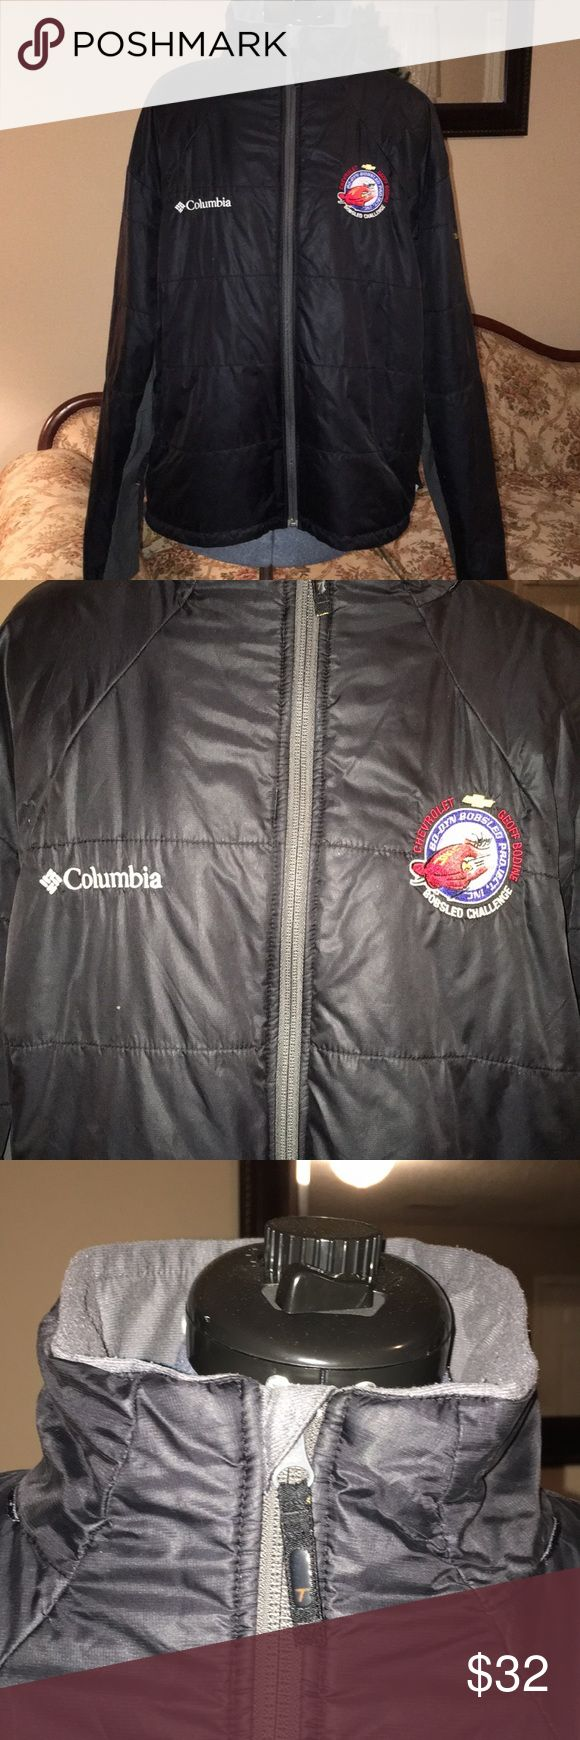 "Columbia Sportswear Company Titanium Jacket Size XL Black with grey trim Titanium Jacket whose sleeves measure 24 1/2"",  Chest 43"" overall length is 26 1/2"".  It has front pockets along with one interior pocket on the left.  The front zipper measures 26"". Columbia Jackets & Coats"